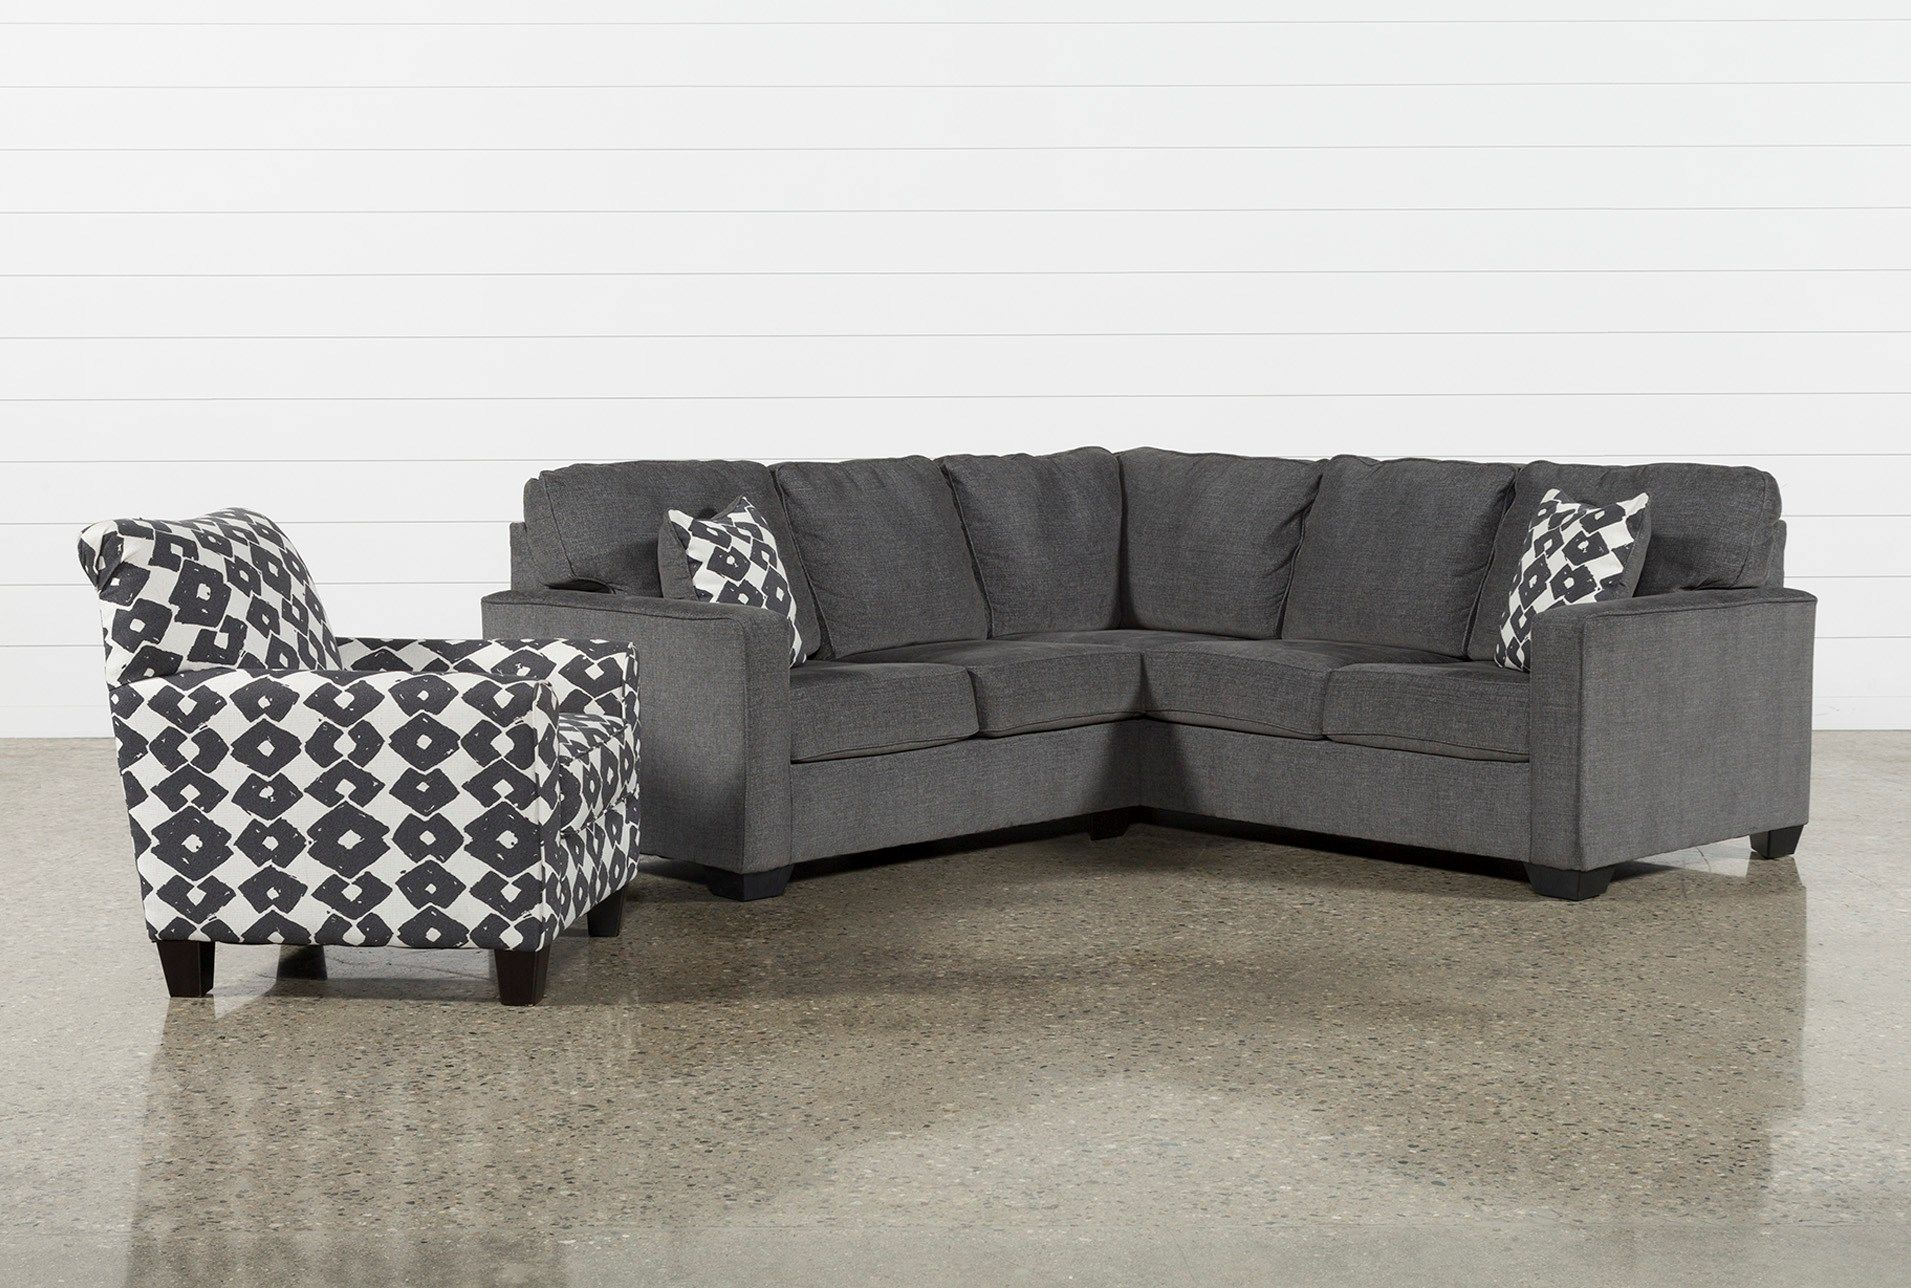 Turdur 2 Piece Left Arm Facing Sectional With Accent Chair Throughout Turdur 2 Piece Sectionals With Laf Loveseat (View 6 of 15)